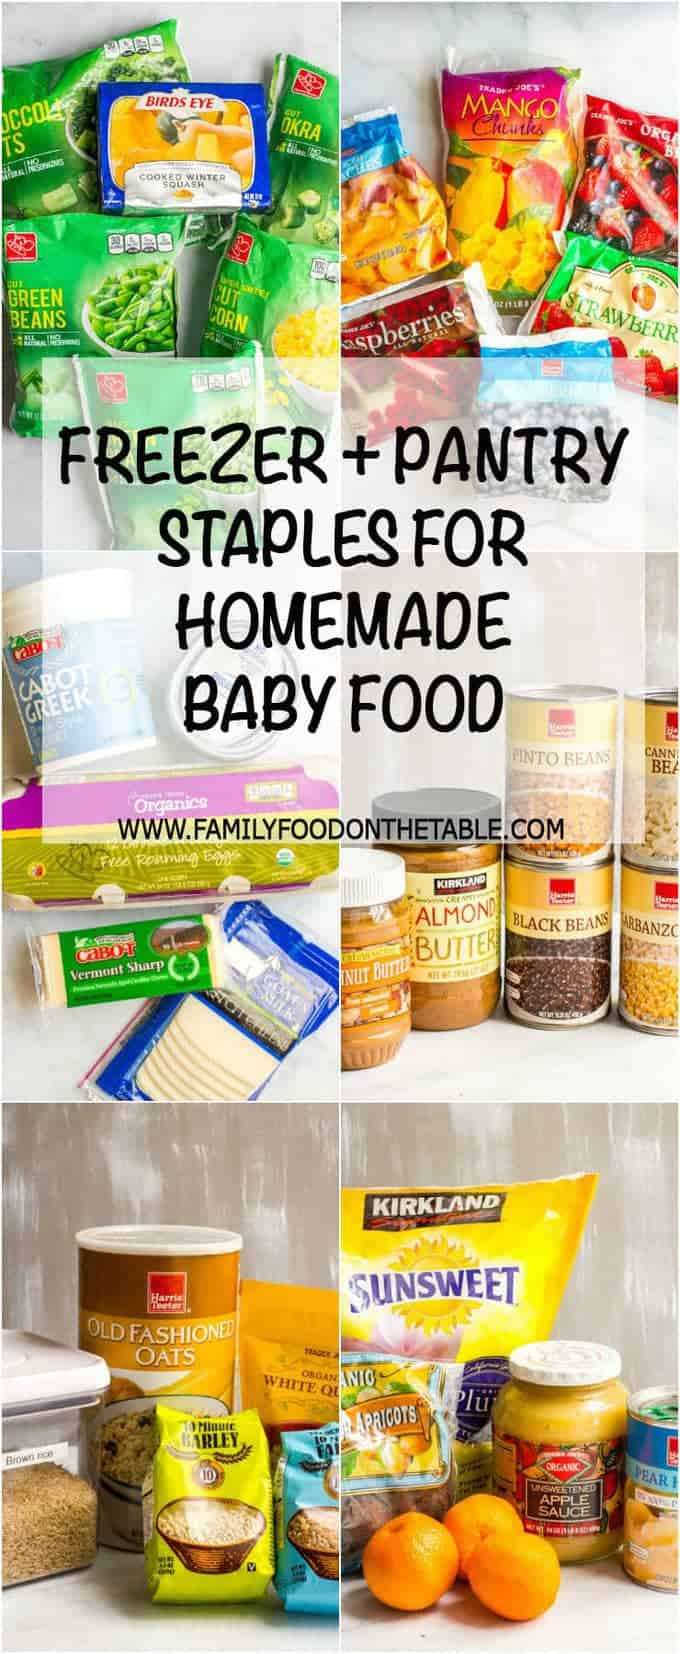 Homemade baby food freezer pantry essentials - easy, healthy foods to keep on hand for making homemade baby food! | www.familyfoodonthetable.com